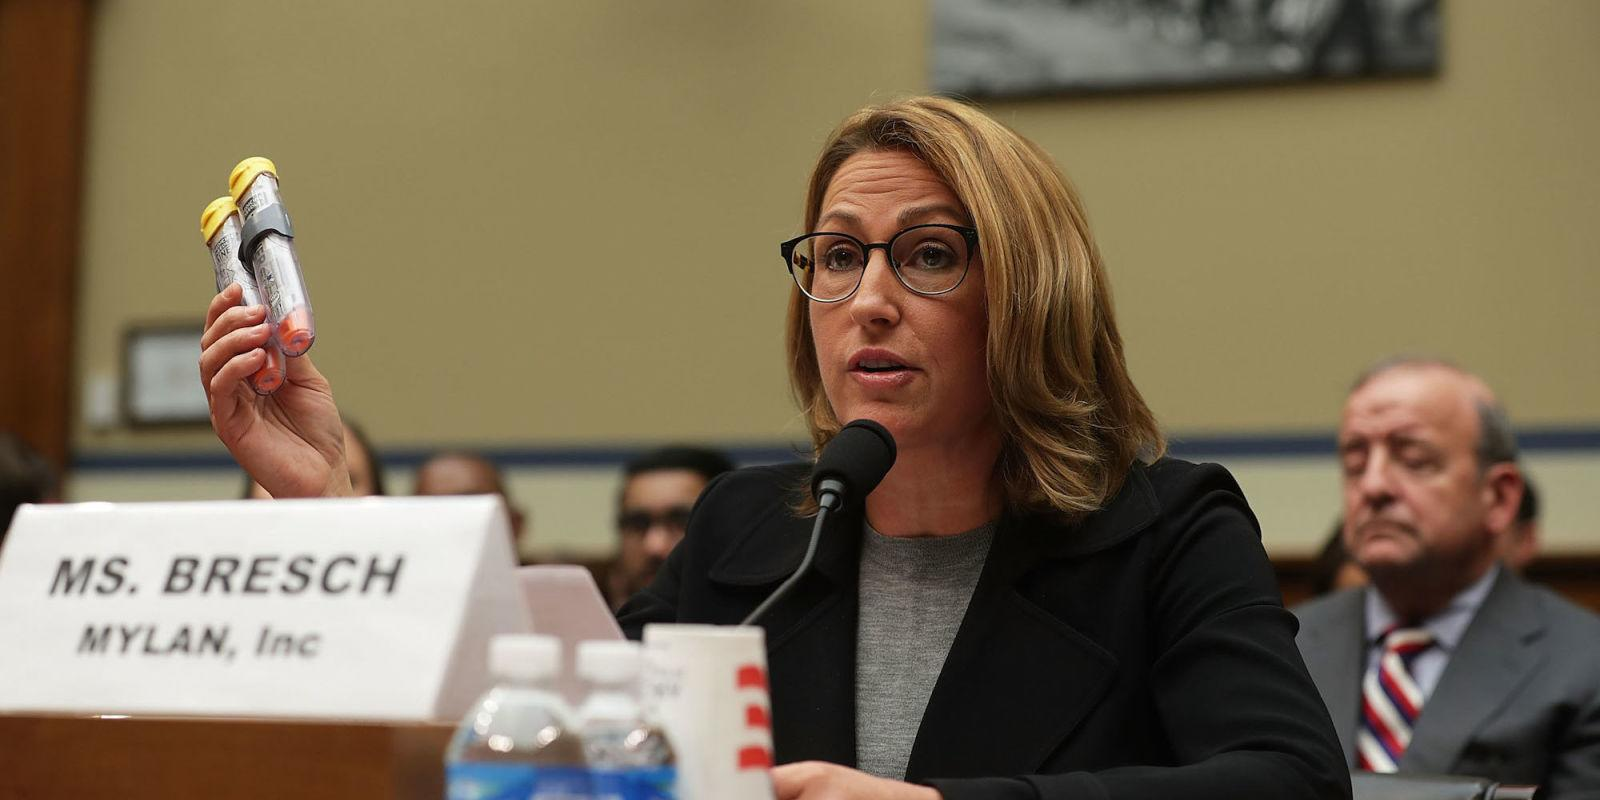 How Does This EpiPen Story Keep Getting Worse?